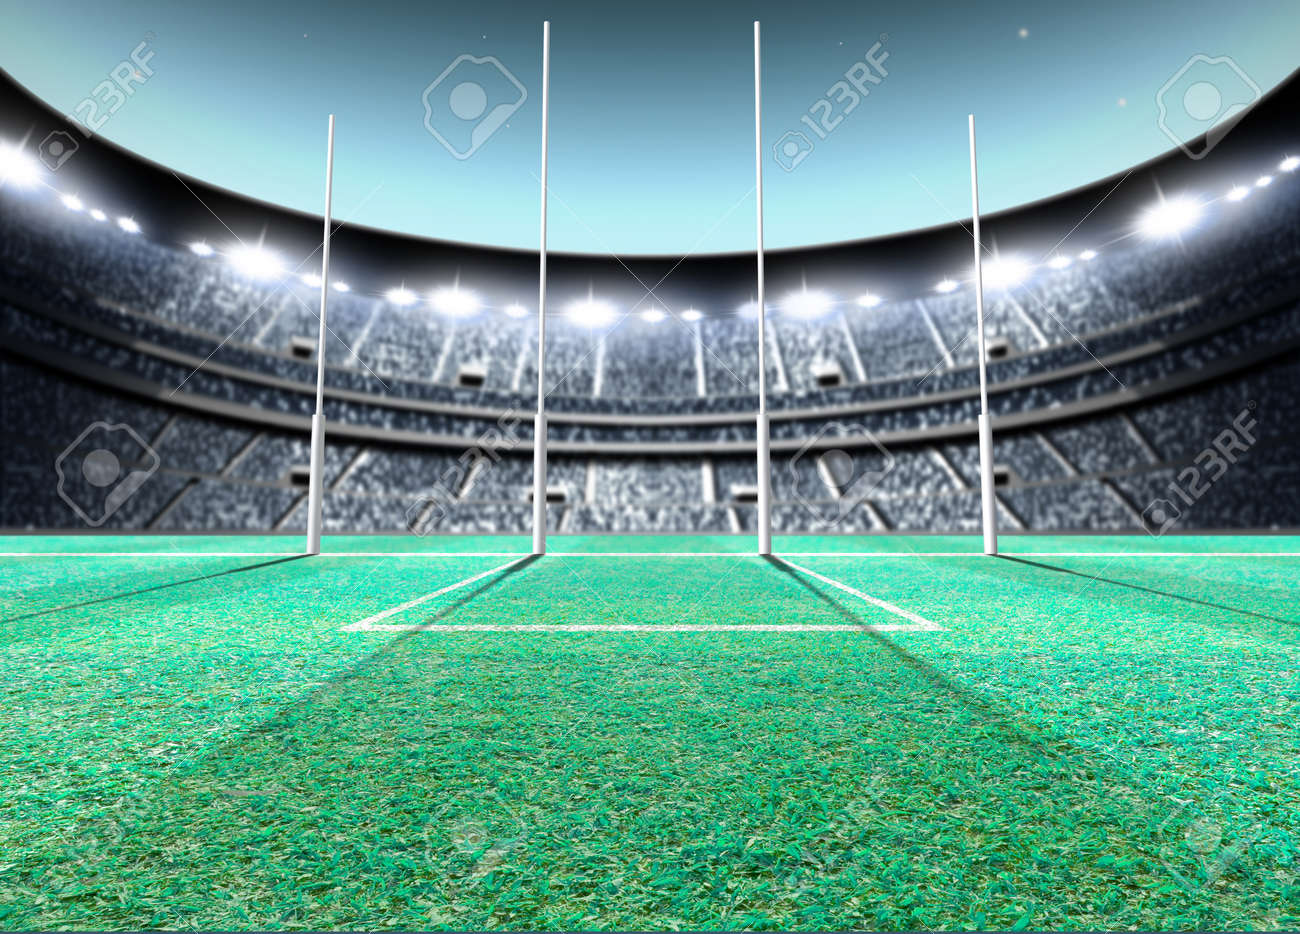 A generic seated aussie rules stadium showing goal posts on a green grass pitch at night under illuminated floodlights - 3D render - 71563508